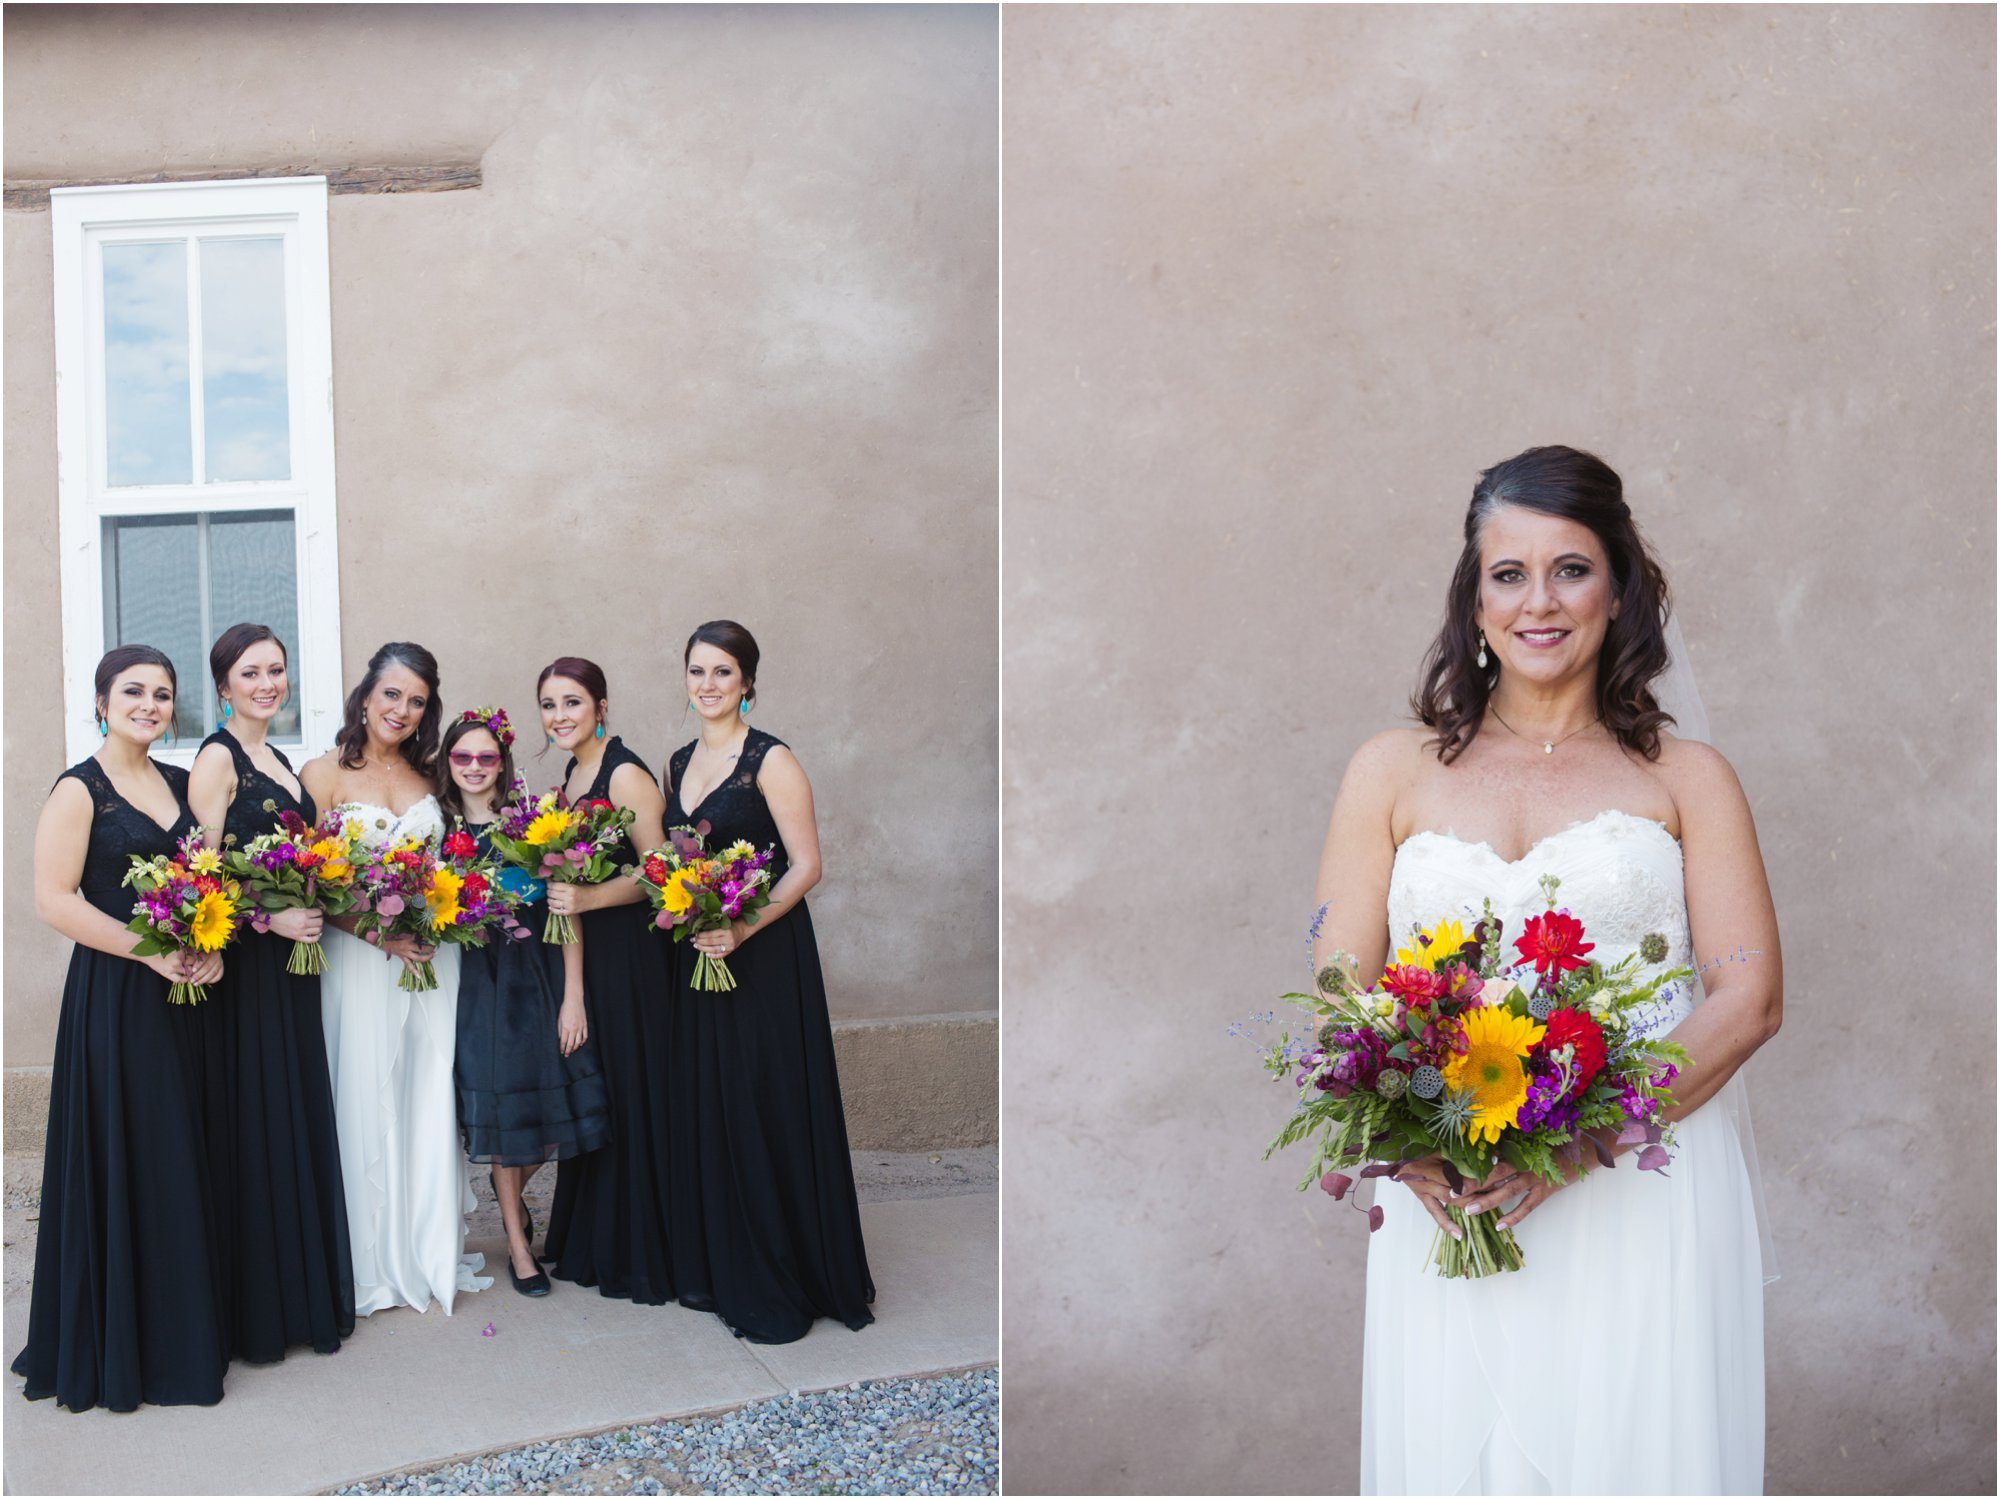 038BlueRosePhotography_ Albuquerque wedding photographers